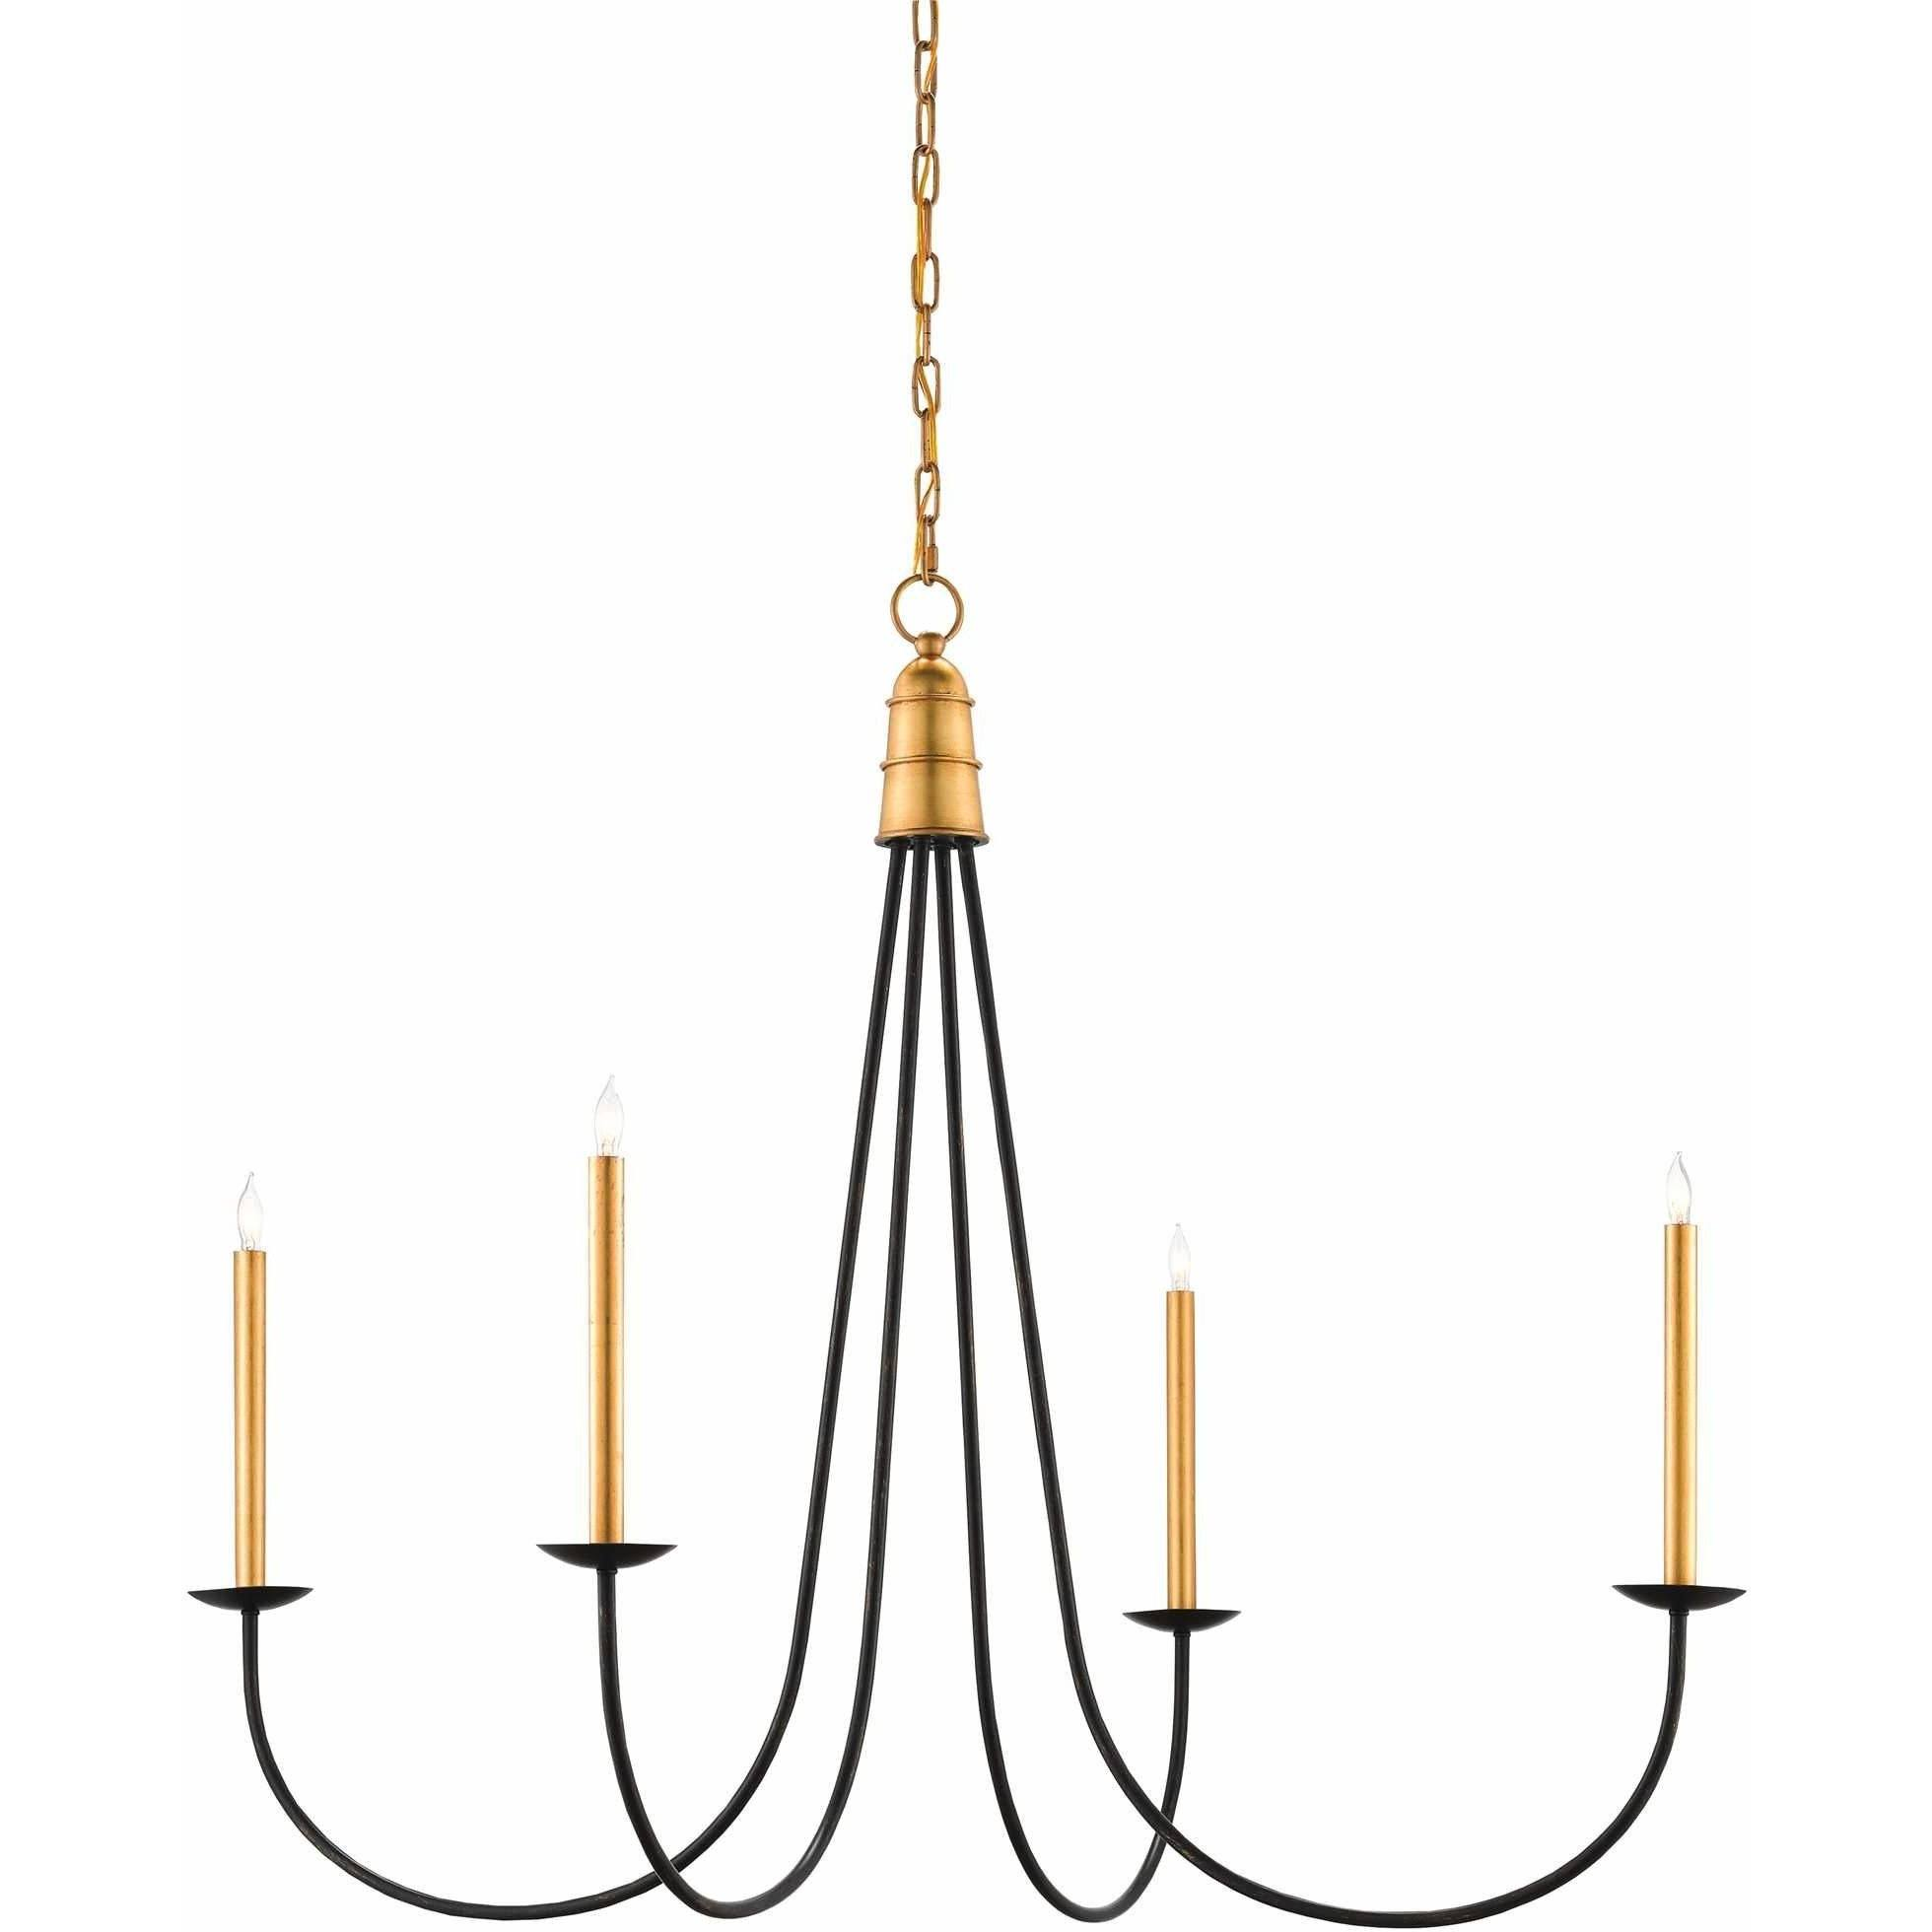 Currey and Company Ogden Chandelier 9000-0233 - LOVECUP